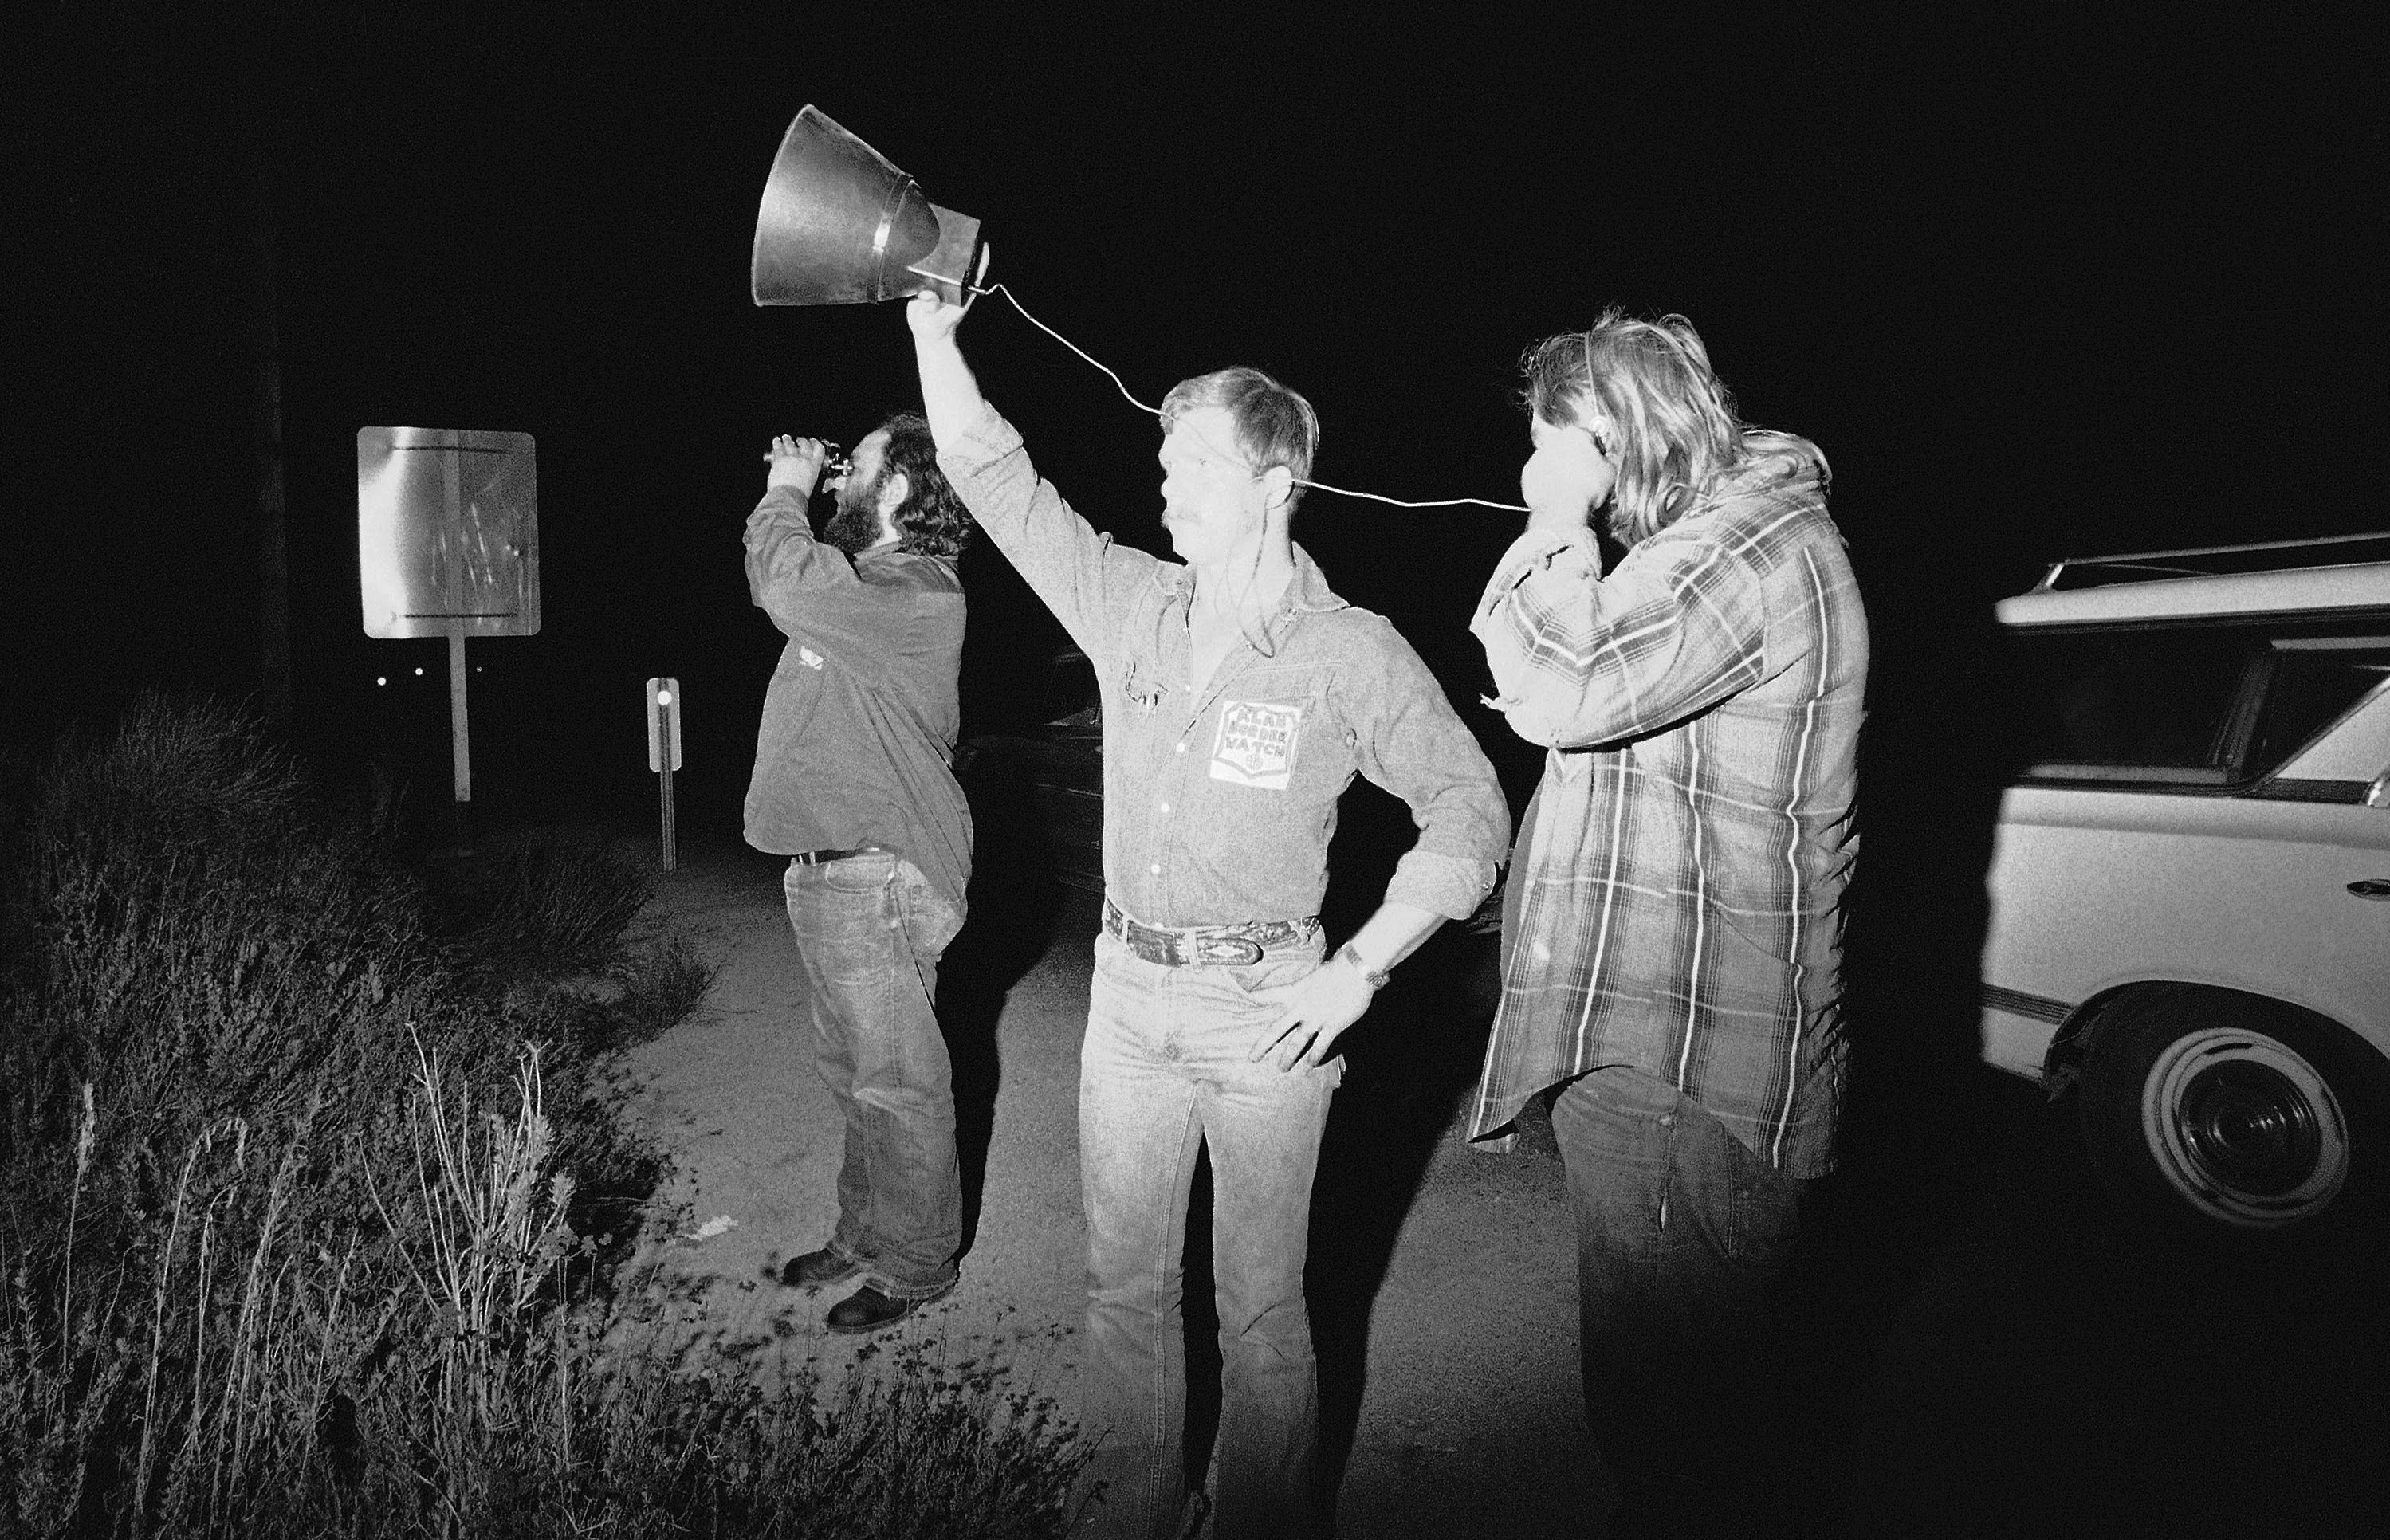 Three members of the Ku Klux Klan use a telescopic listening device and binoculars near the California-Mexico border in their search for illegal aliens entering the country in Dulzura on Tuesday, Oct. 26, 1977. Dennis Campbell, center, holds the listening instrument as Jim Shea, left, scans the hilltops for movement in the bright moonlight. The man at right refused to be identified. (AP Photo/Harold Valentine)